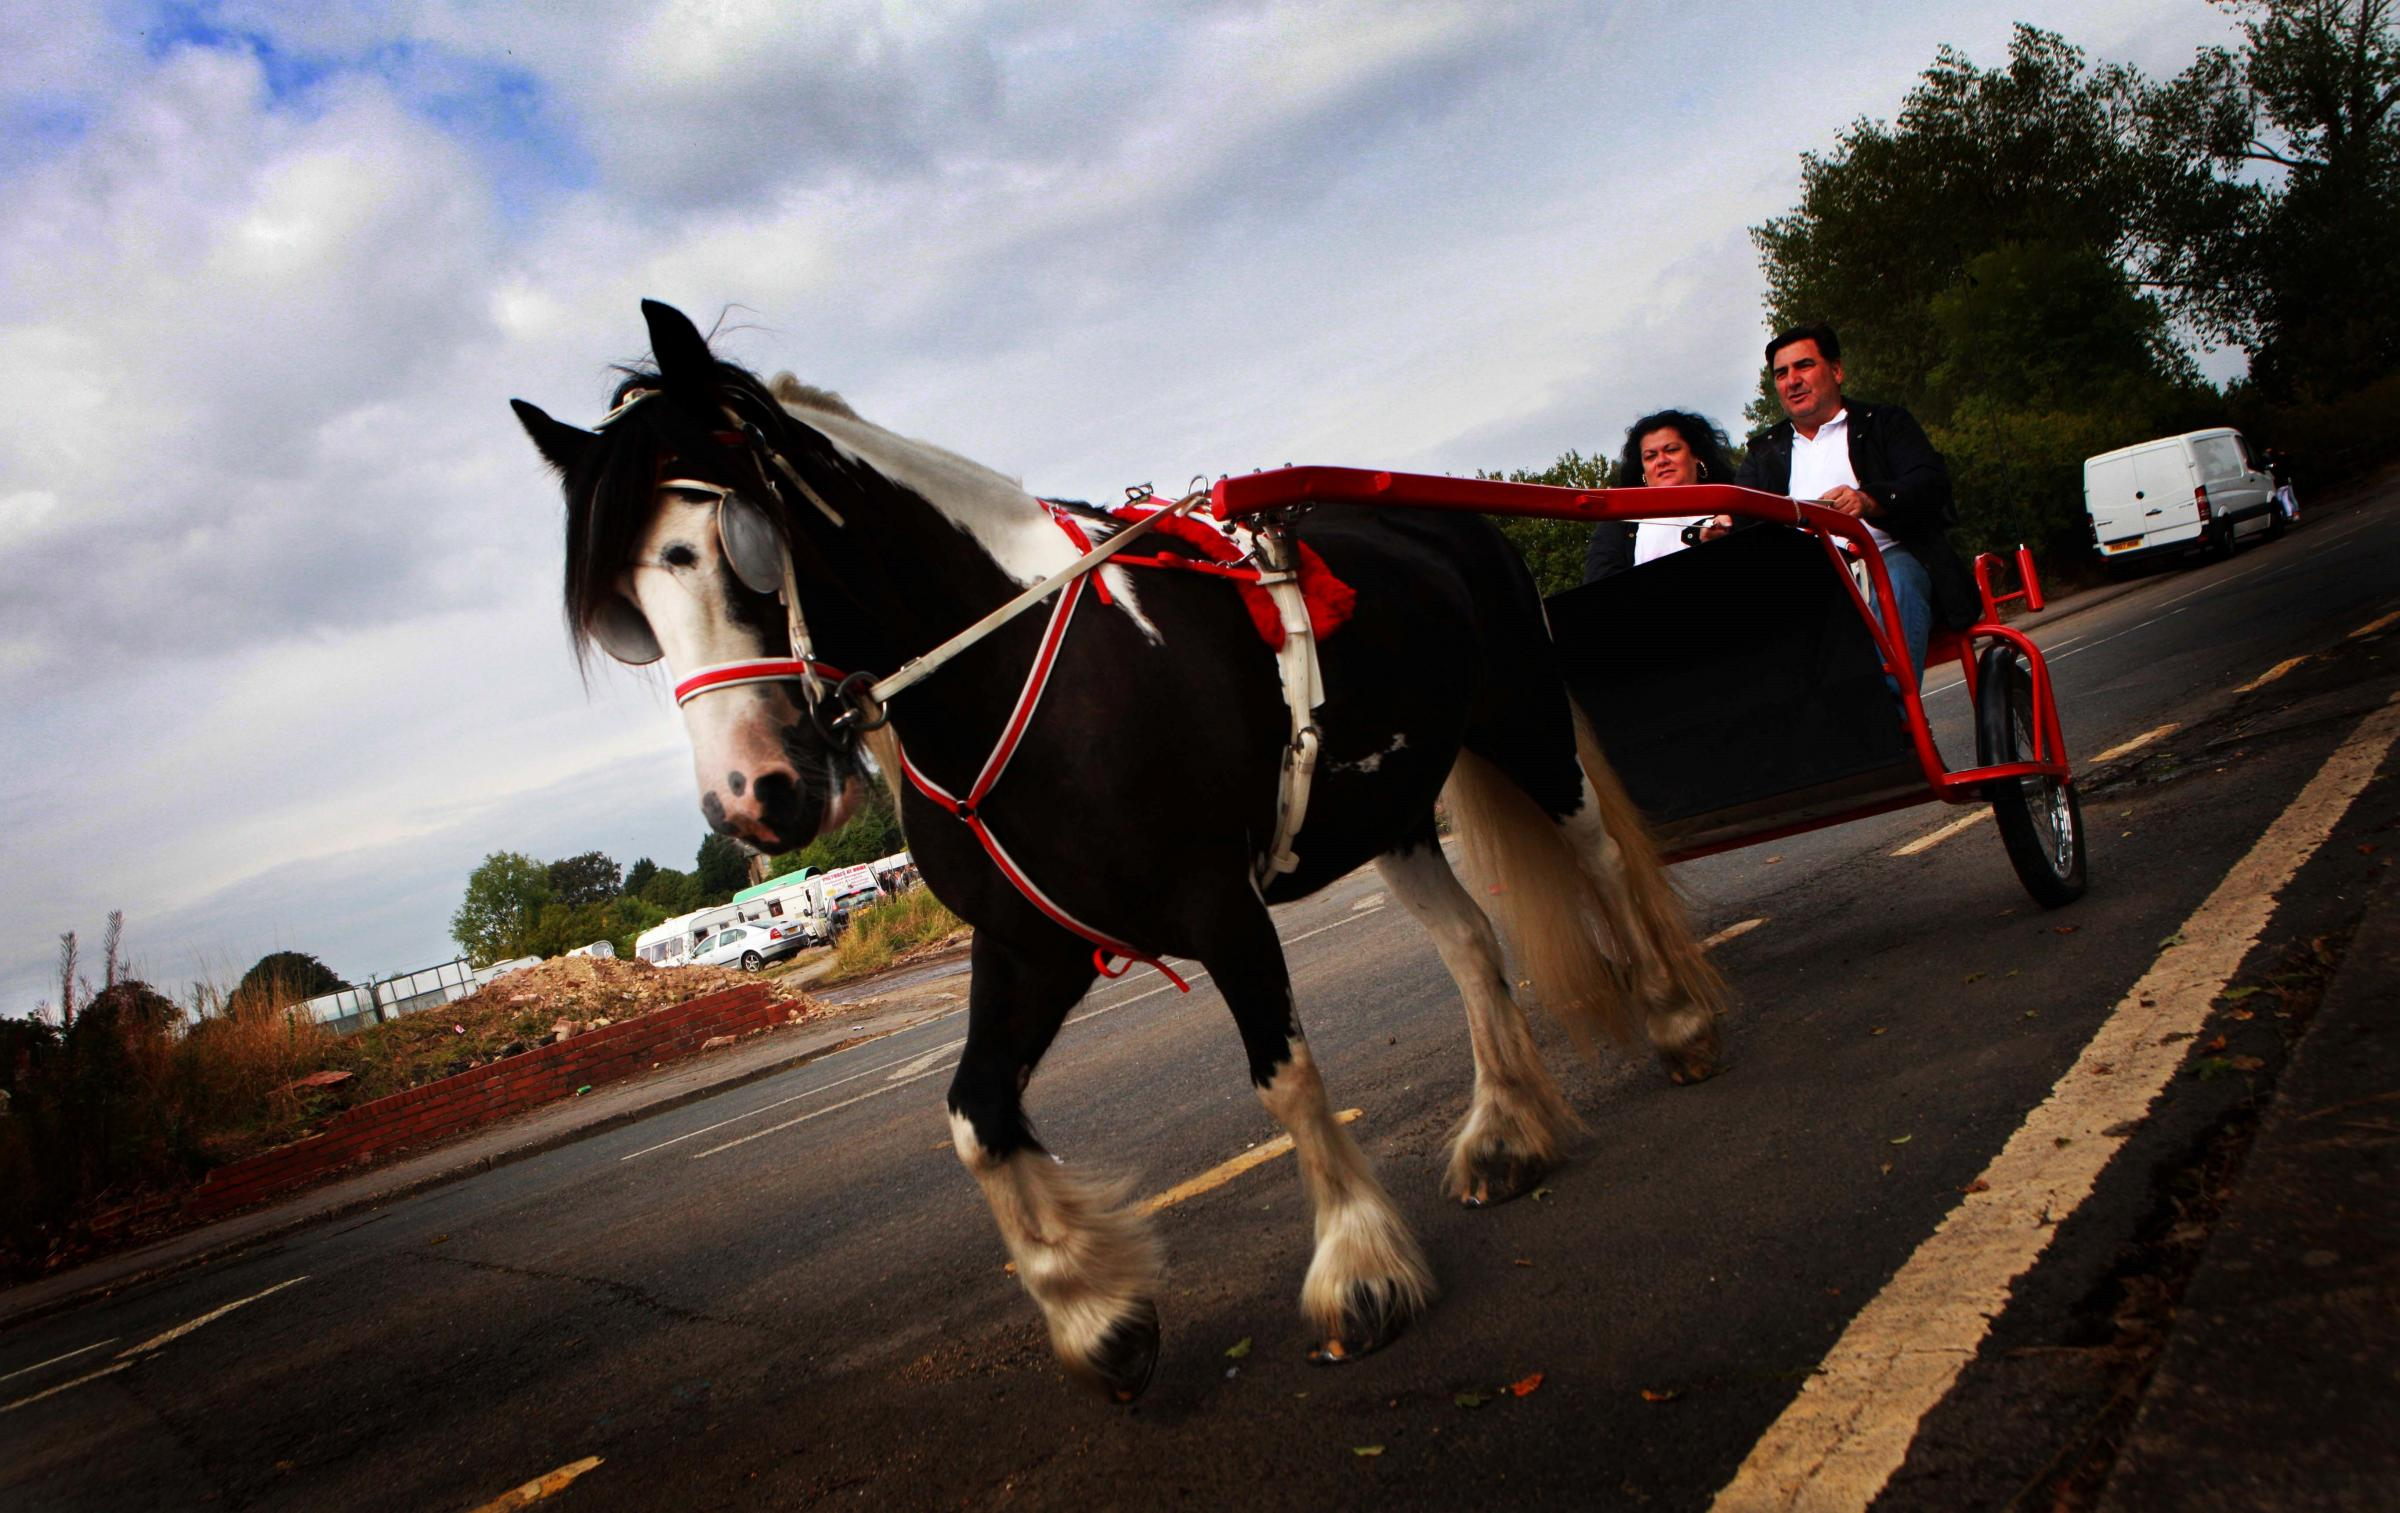 Sedgefield horse fair passes without incident